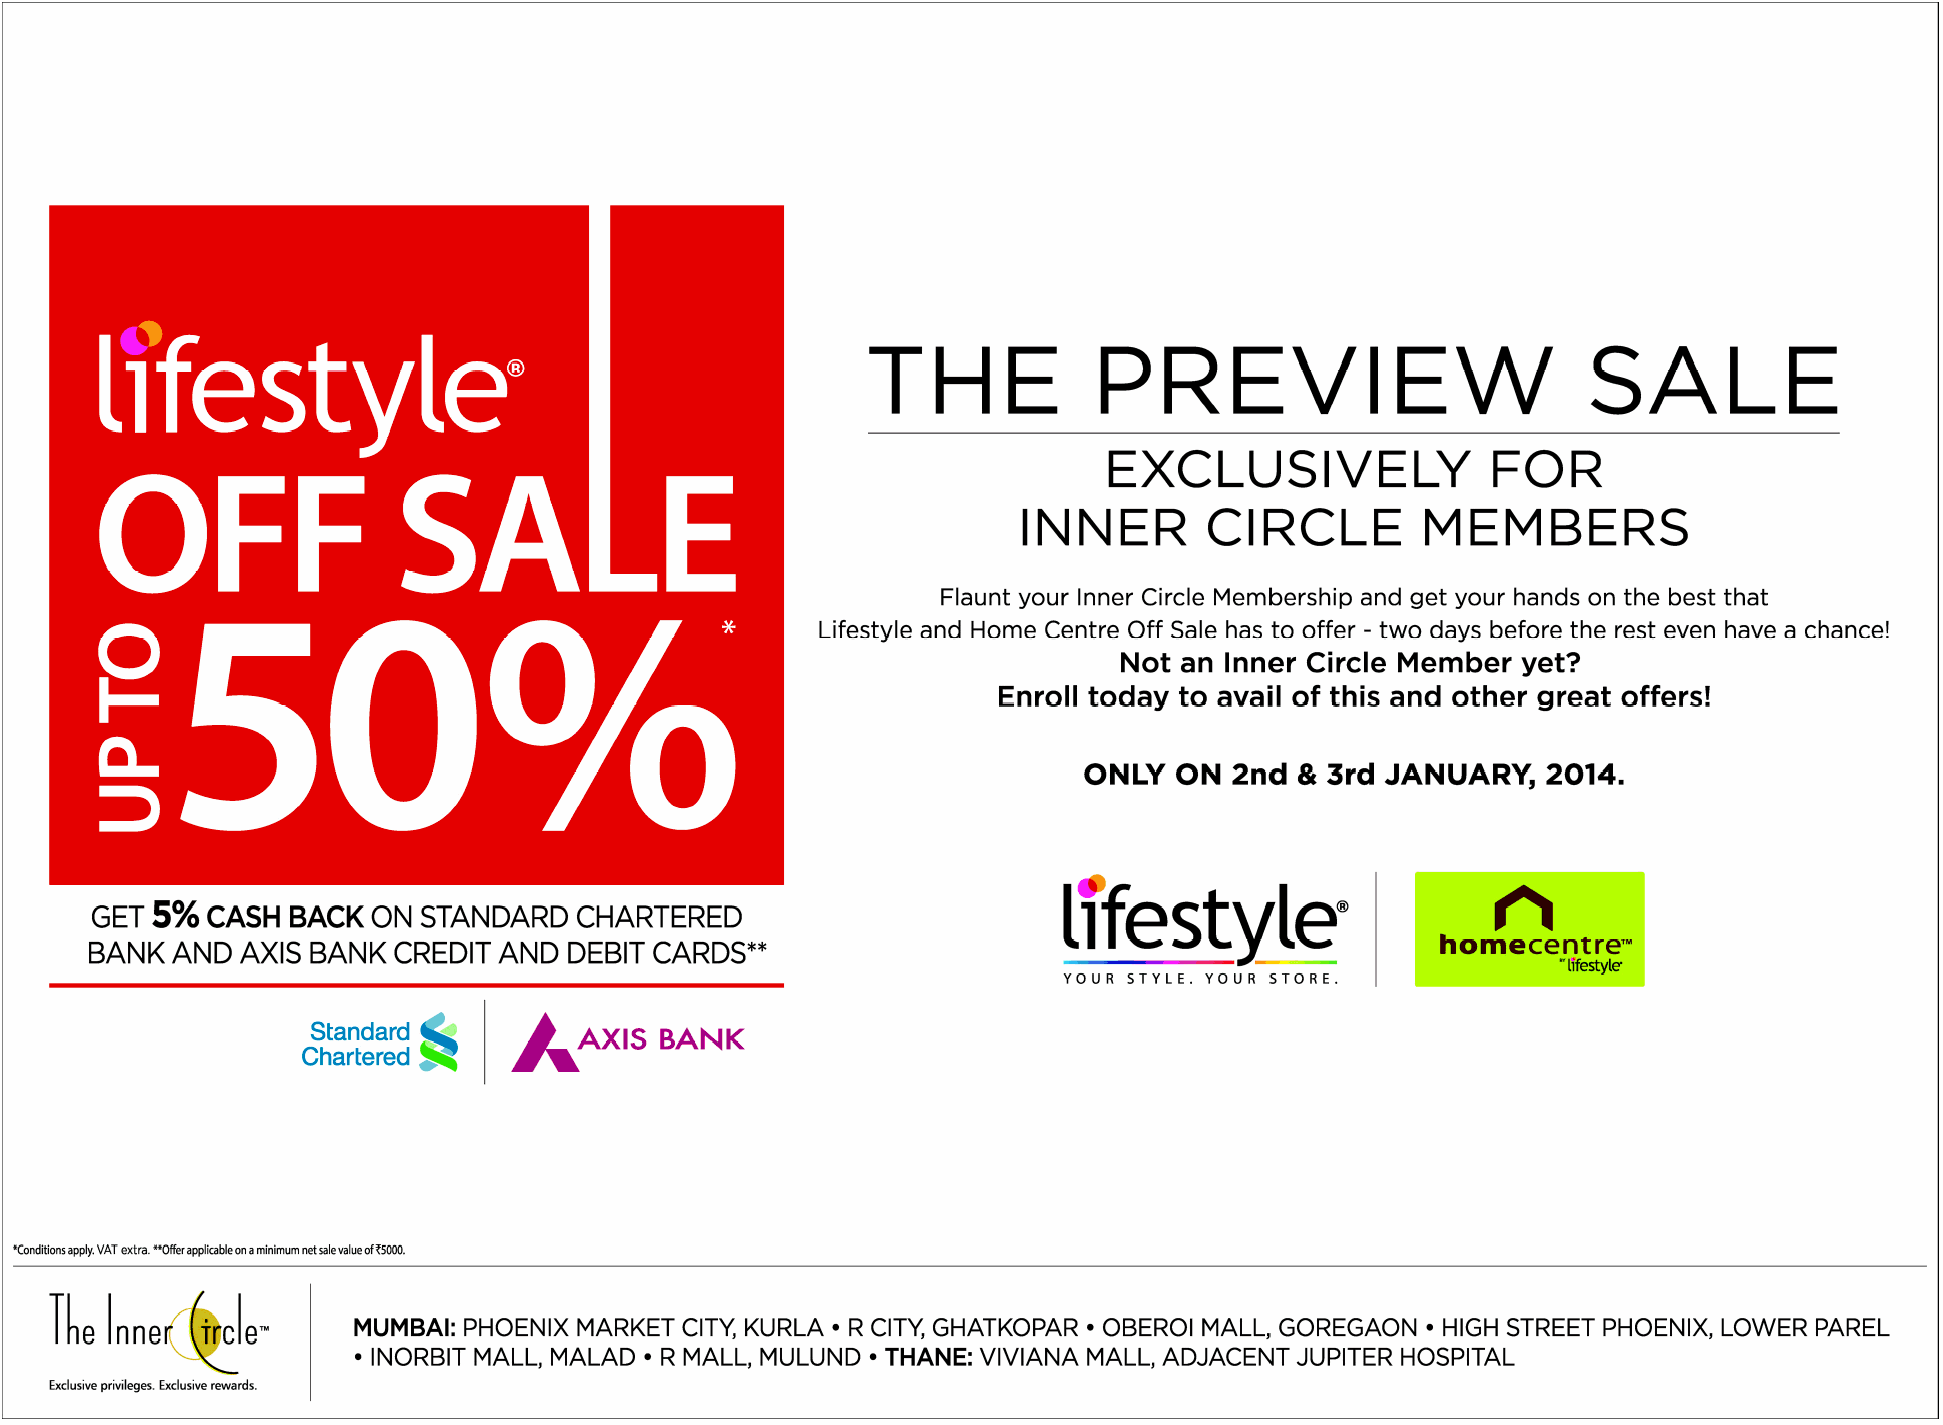 LifeStyle - Upto 50% Off